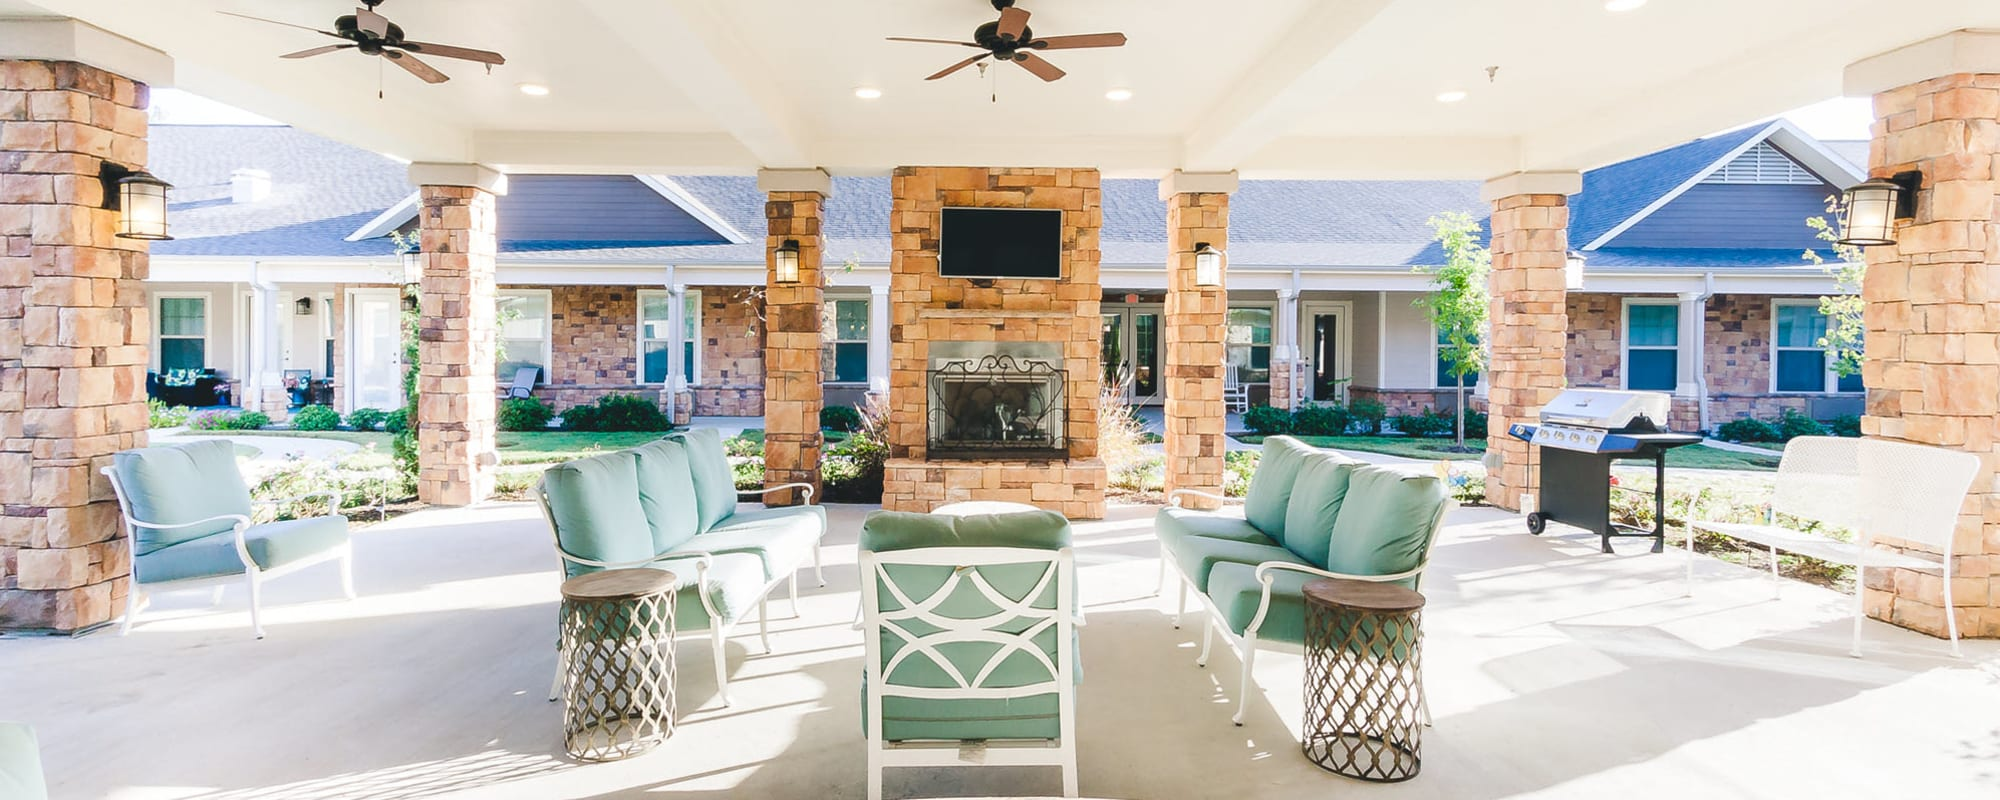 Meet the Team at Wood Glen Court in Spring, Texas